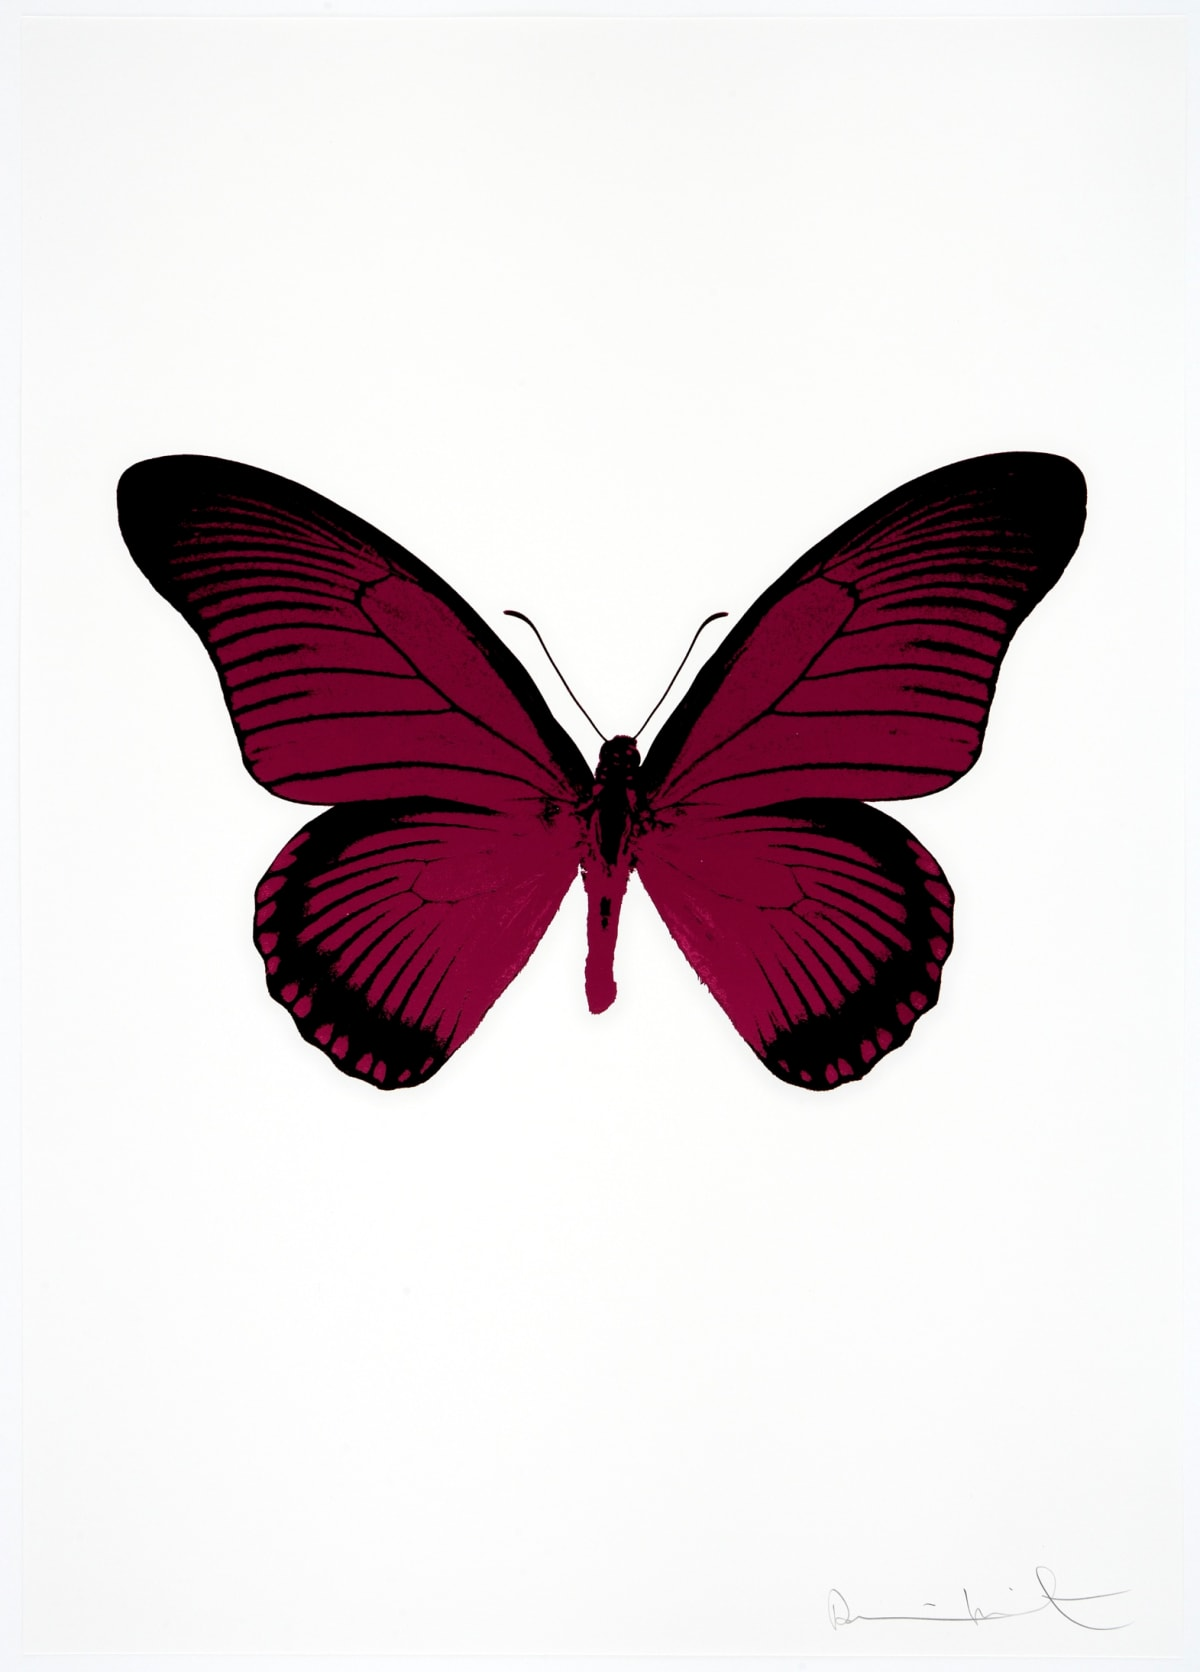 Damien Hirst The Souls IV - Fuchsia Pink/Raven Black, 2010 2 colour foil block on 300gsm Arches 88 archival paper. Signed and numbered. Published by Paul Stolper and Other Criteria 72 x 51cm OC7986 / 1418-9 Edition of 15